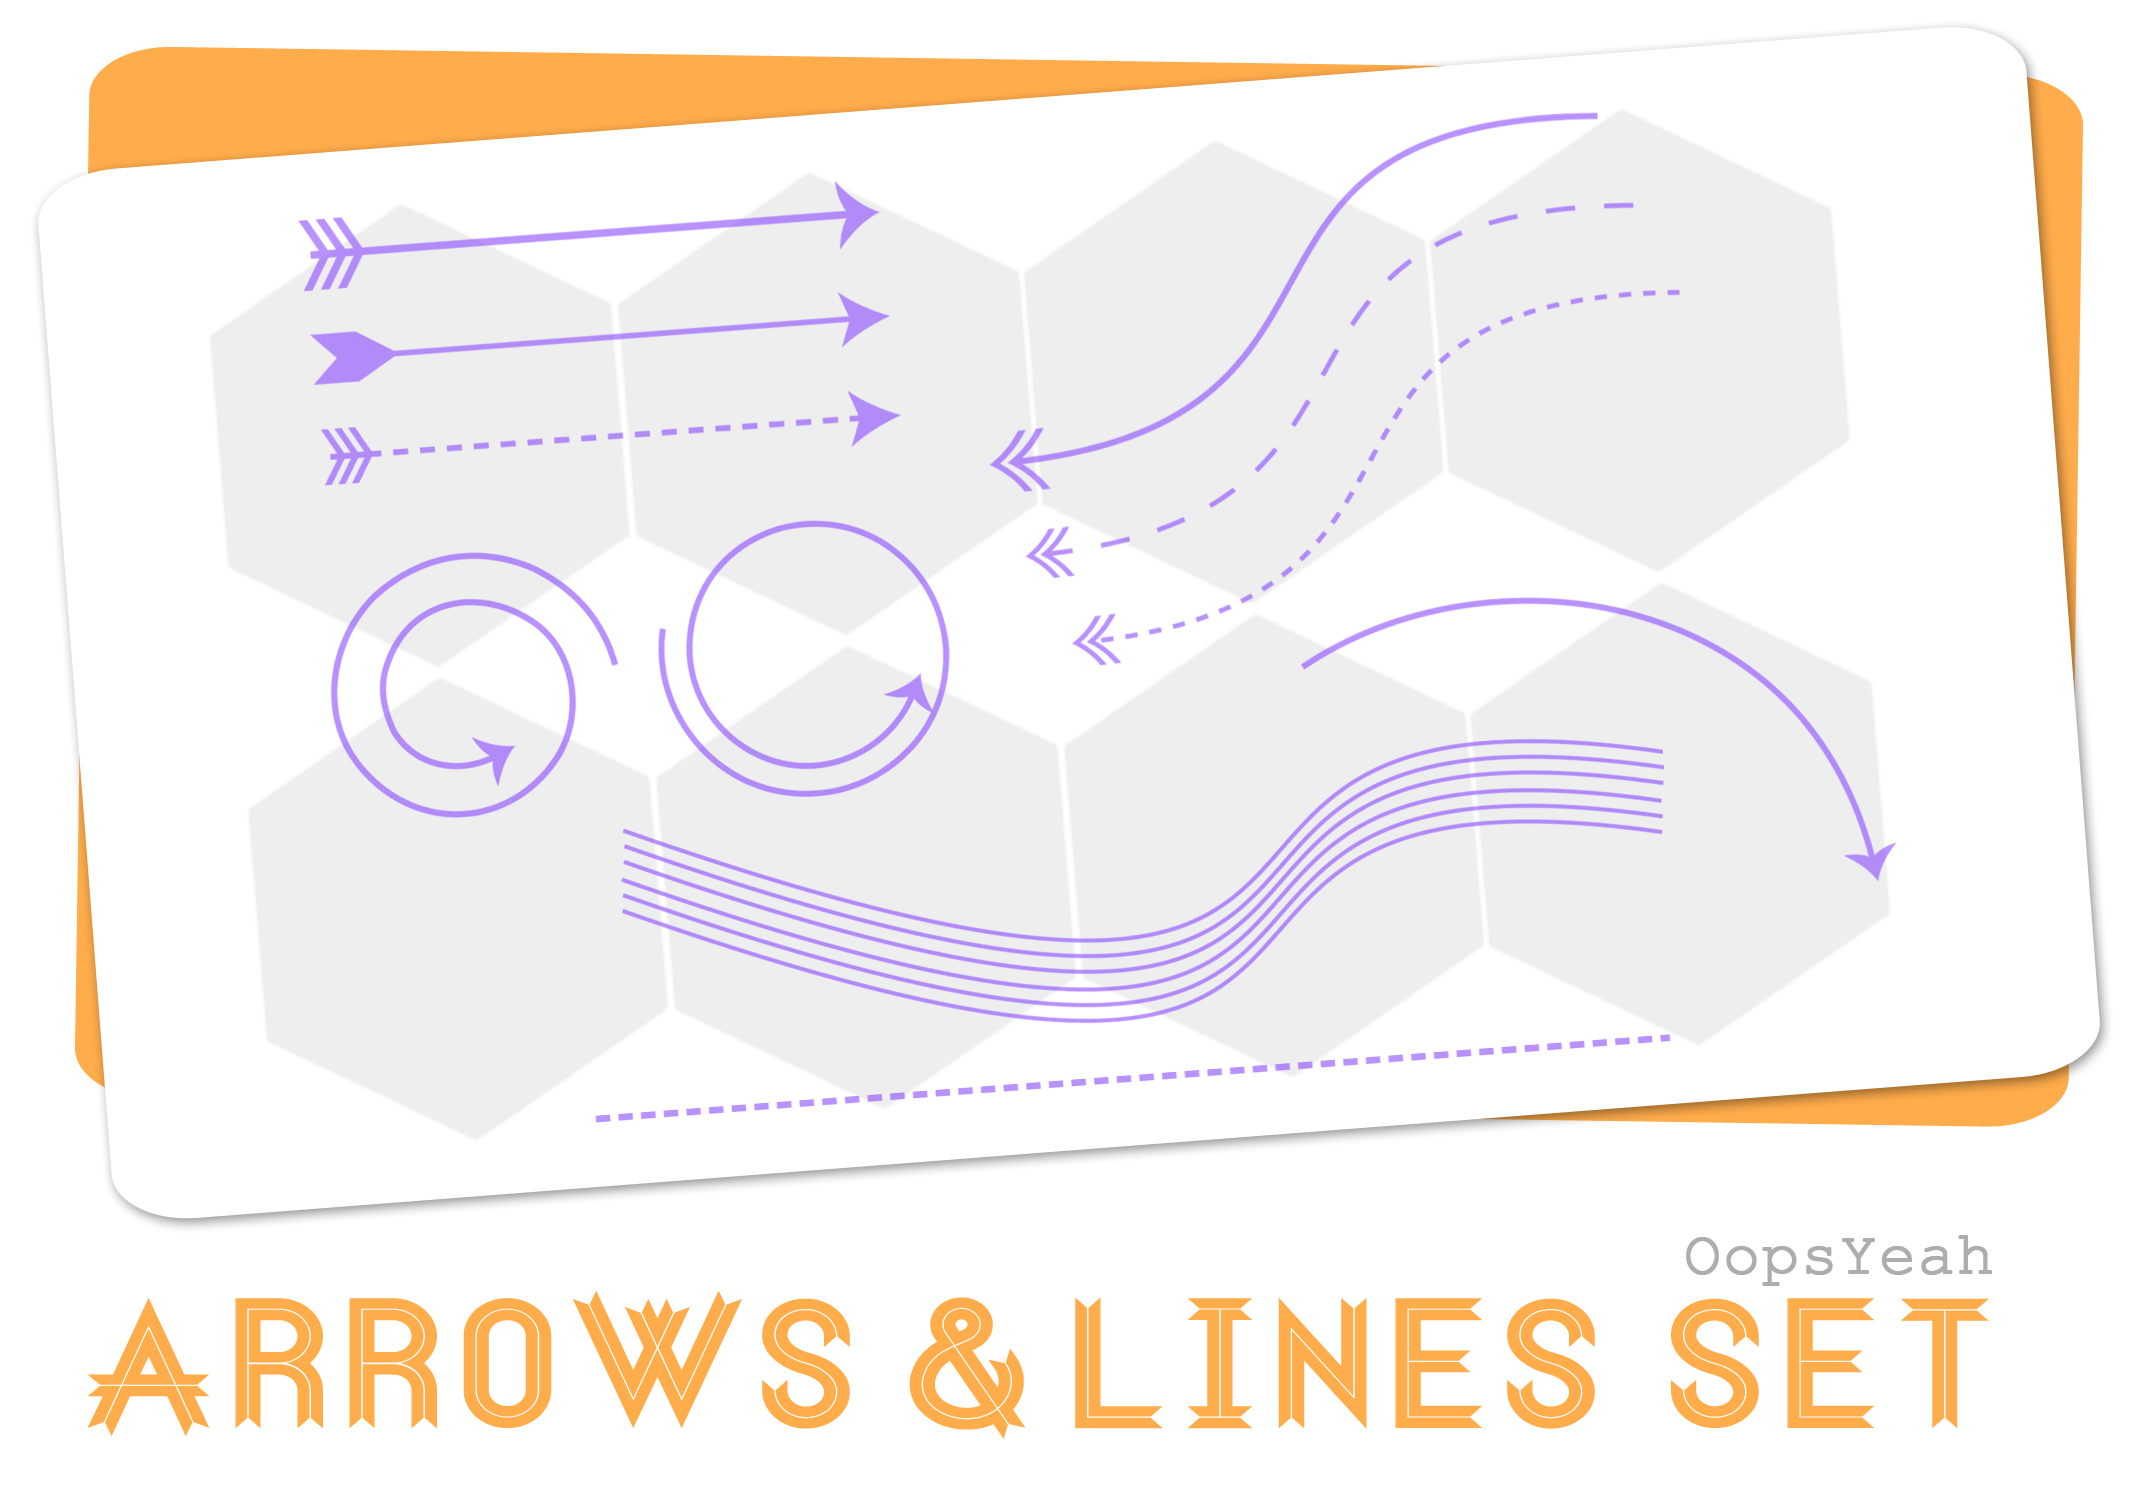 Arrows and lines brush set by oopsyeah on deviantart arrows and lines brush set by oopsyeah ccuart Choice Image